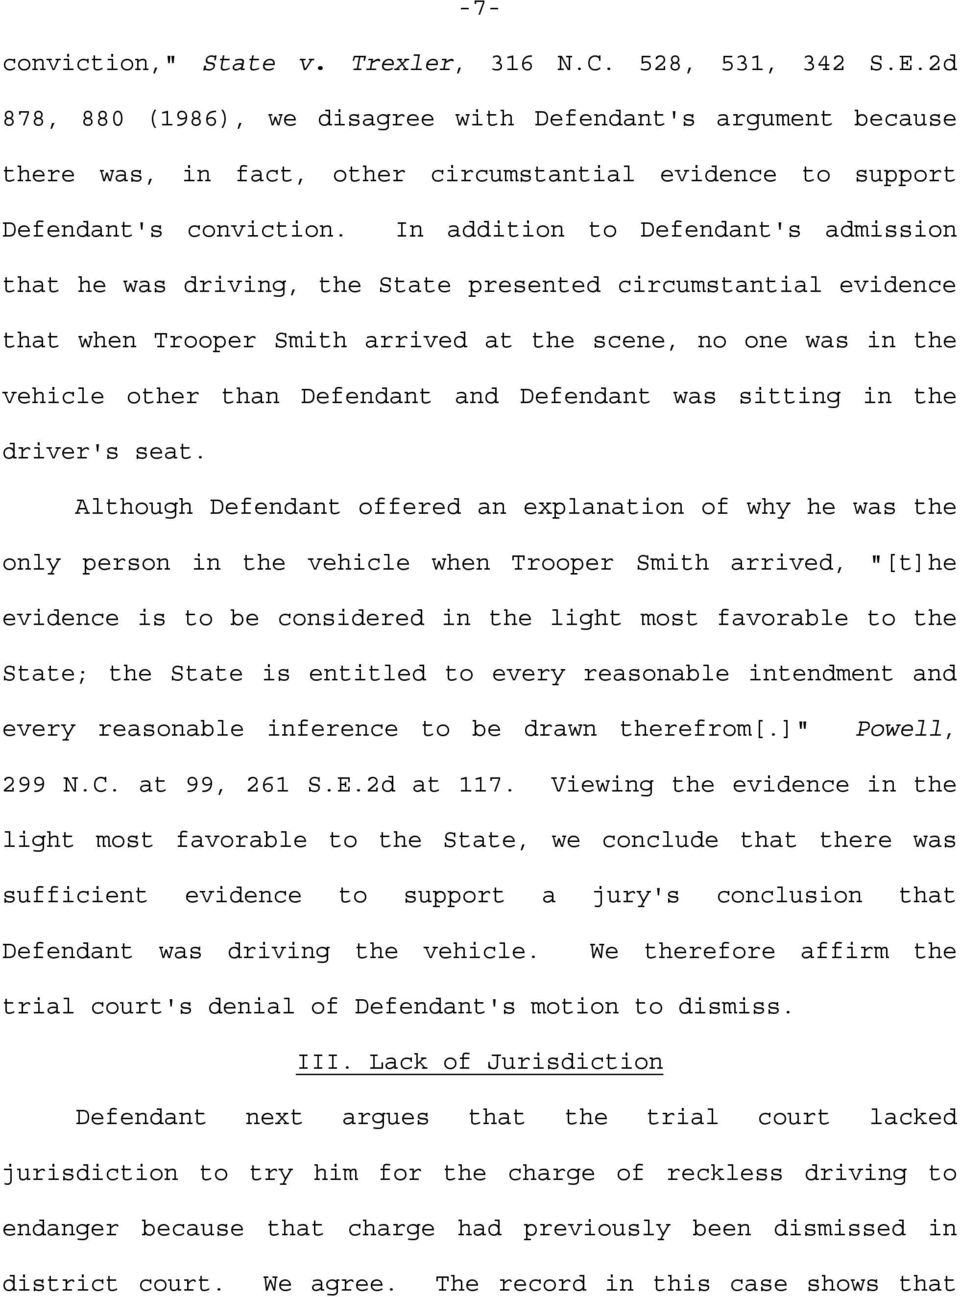 In addition to Defendant's admission that he was driving, the State presented circumstantial evidence that when Trooper Smith arrived at the scene, no one was in the vehicle other than Defendant and